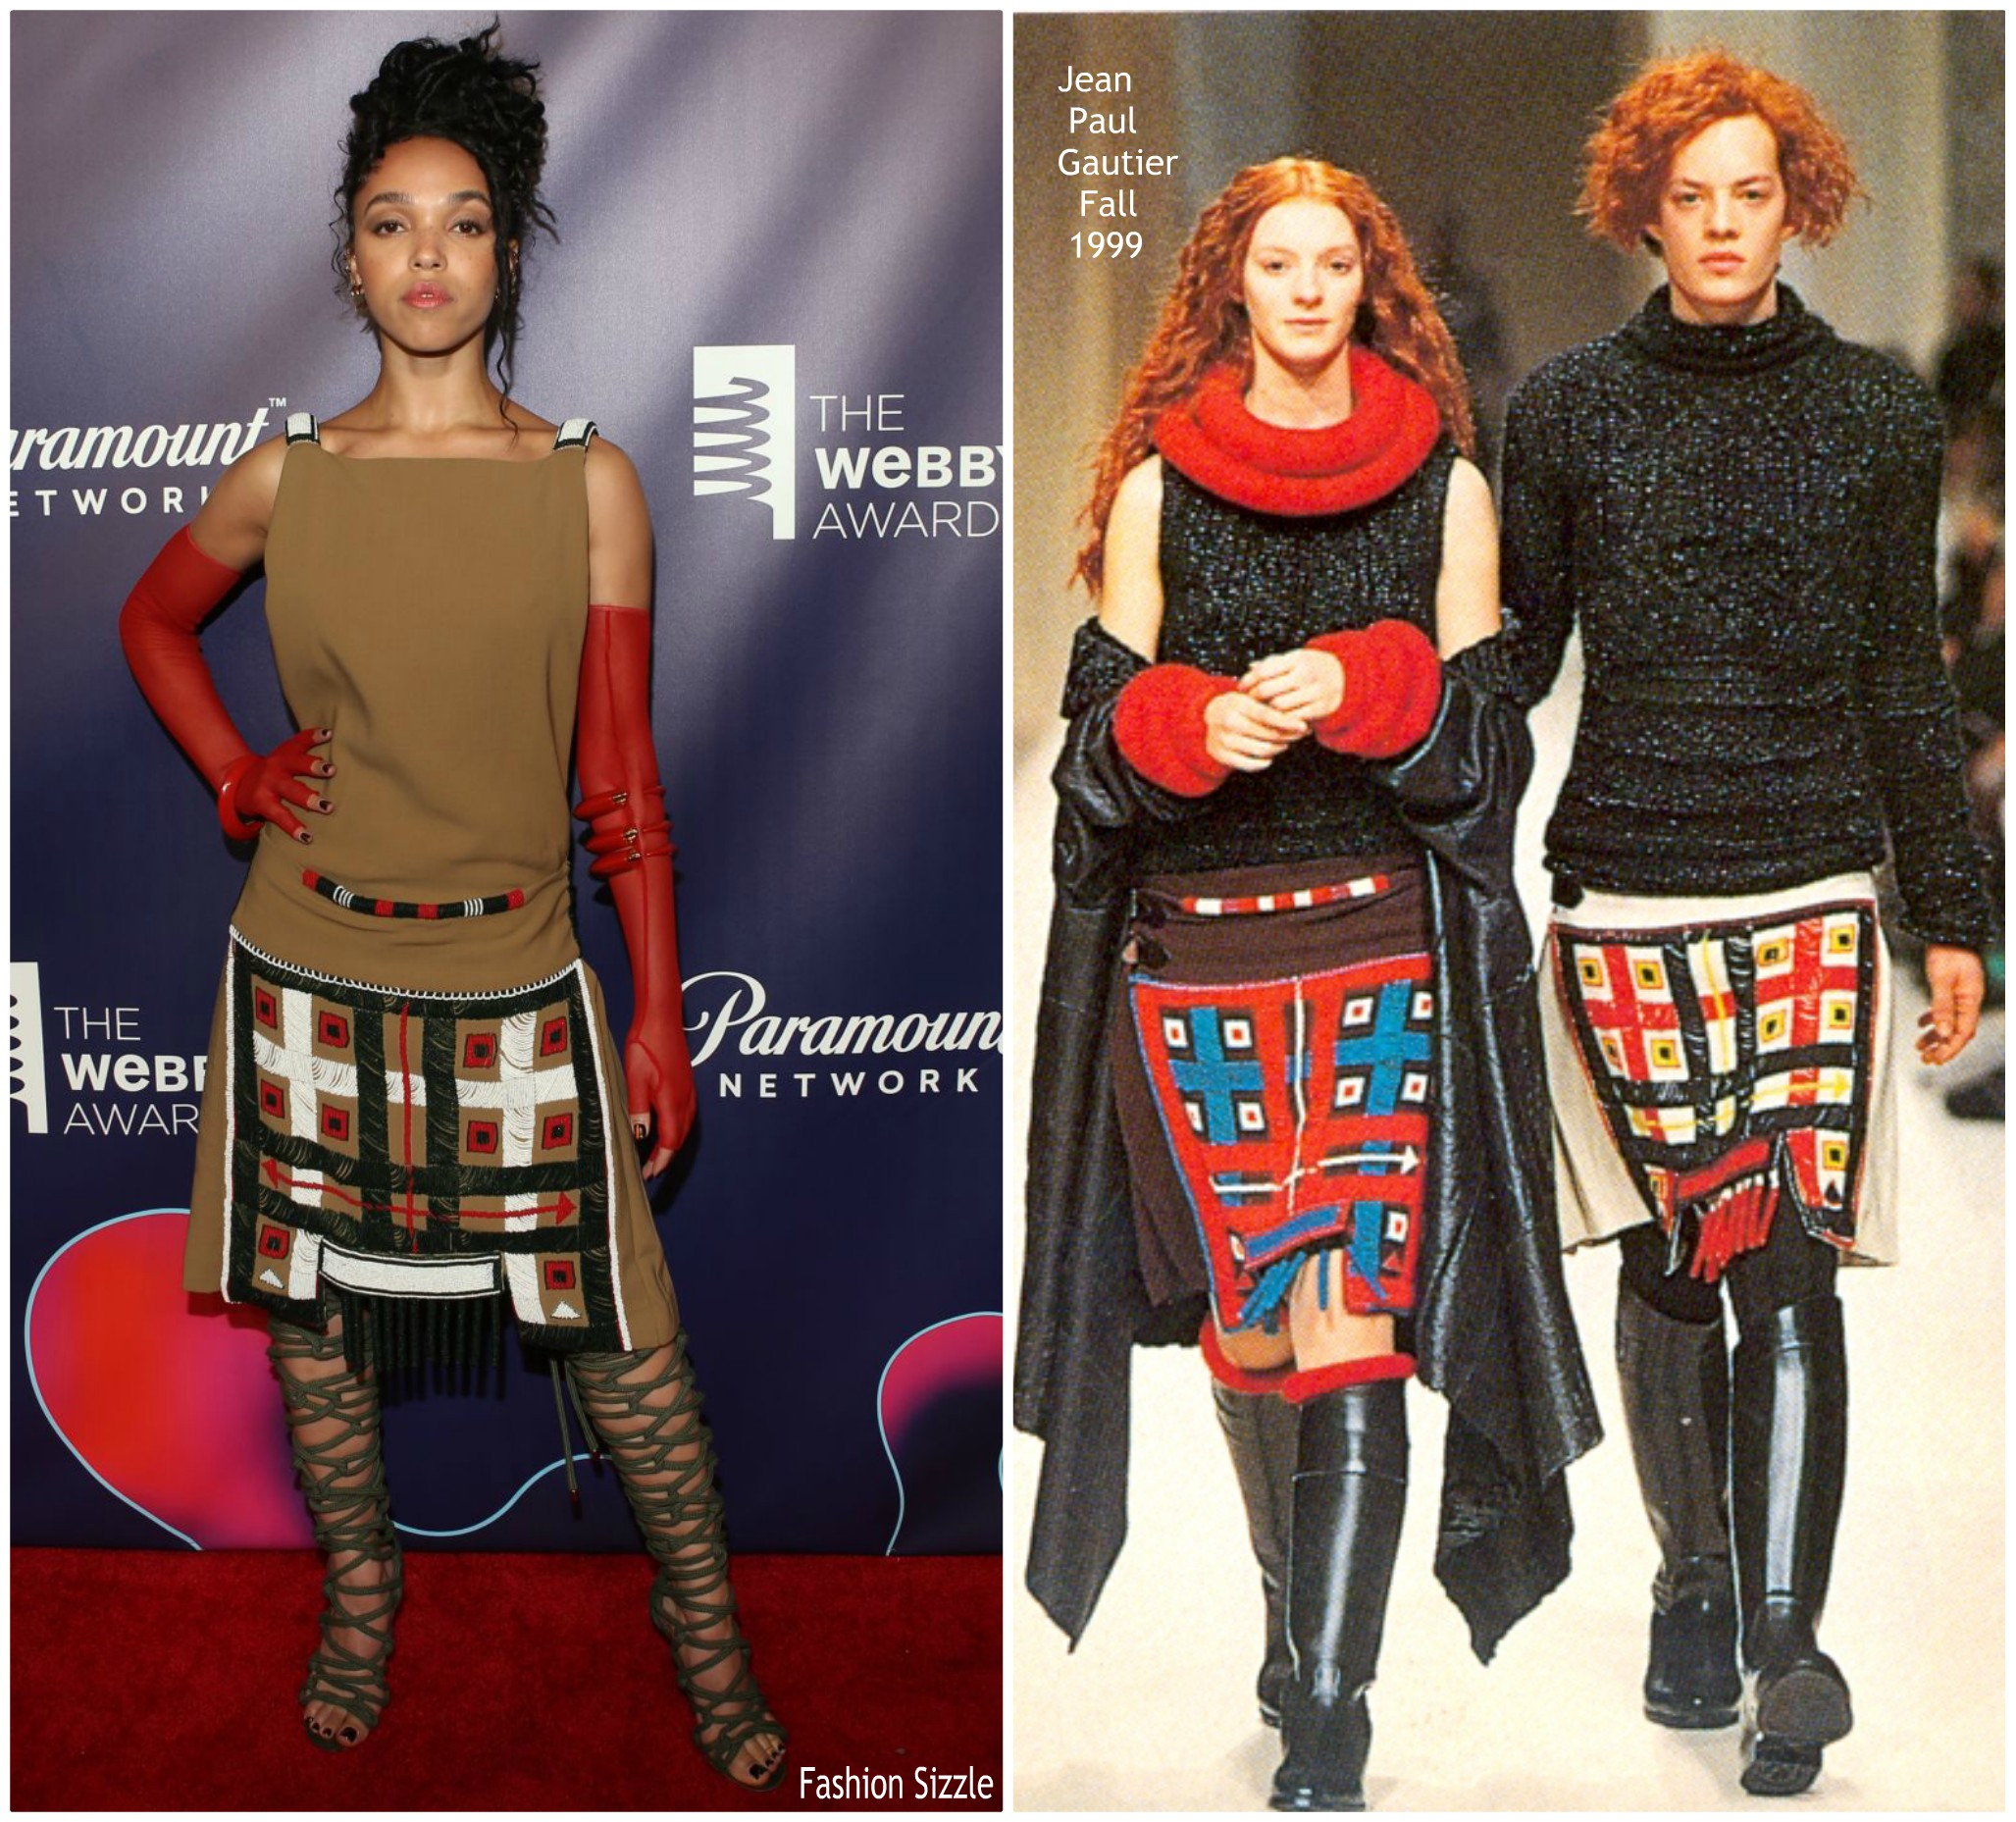 fka-twigs-in-vintage-jean-paul-gaultier-22nd-annual-webby-awards